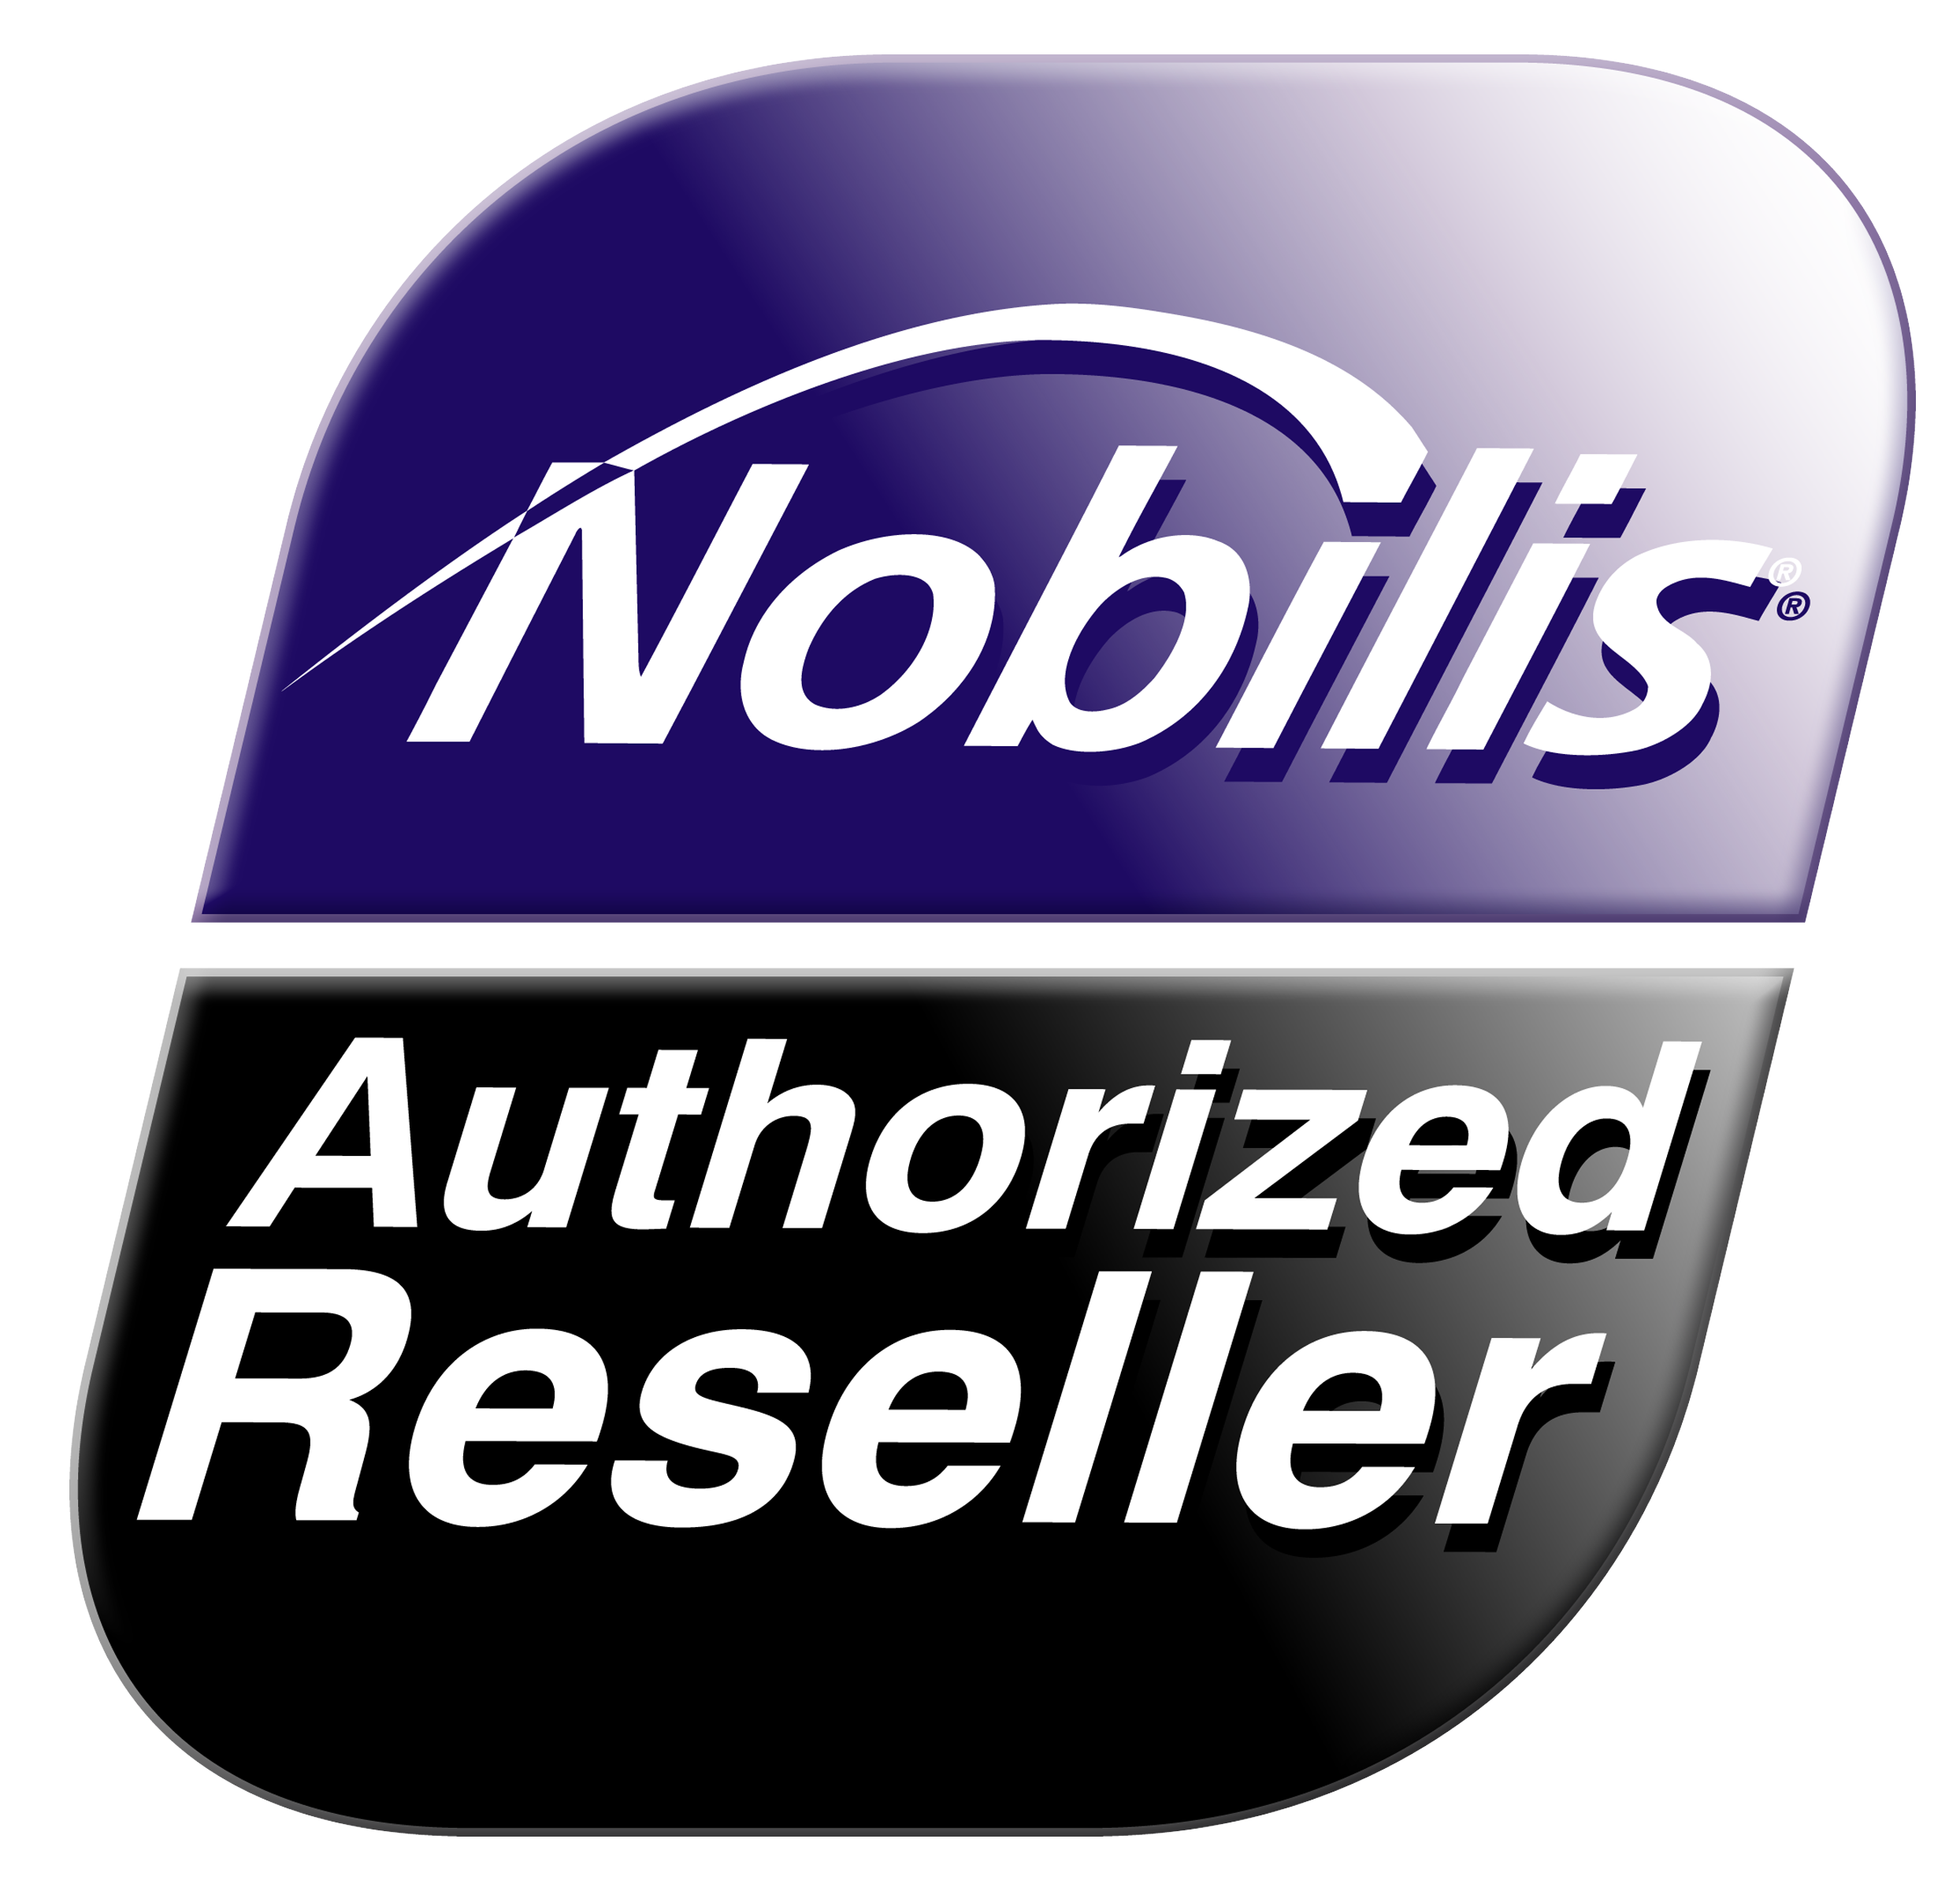 Nobilis_Authorized_Reseller.png